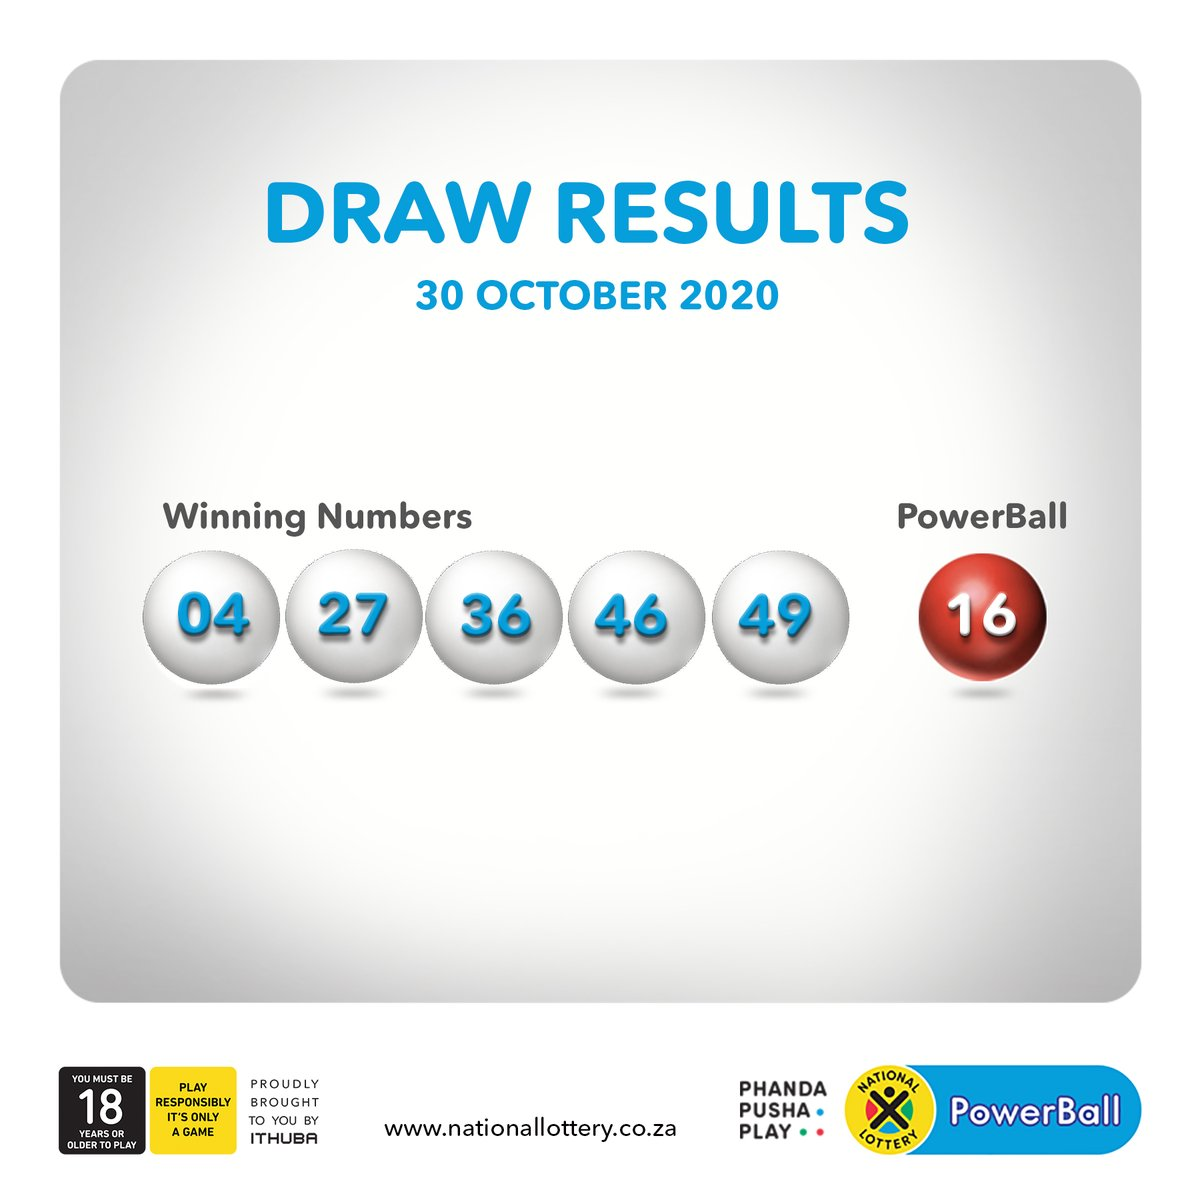 #DrawResults for 30/10/20 are:   #PowerBall: 04, 27, 36, 46, 49 #PowerBall: 16 #PowerBallPLUS: 16, 26, 34, 41, 42 #PowerBall: 10 https://t.co/vDMaT4i1z2